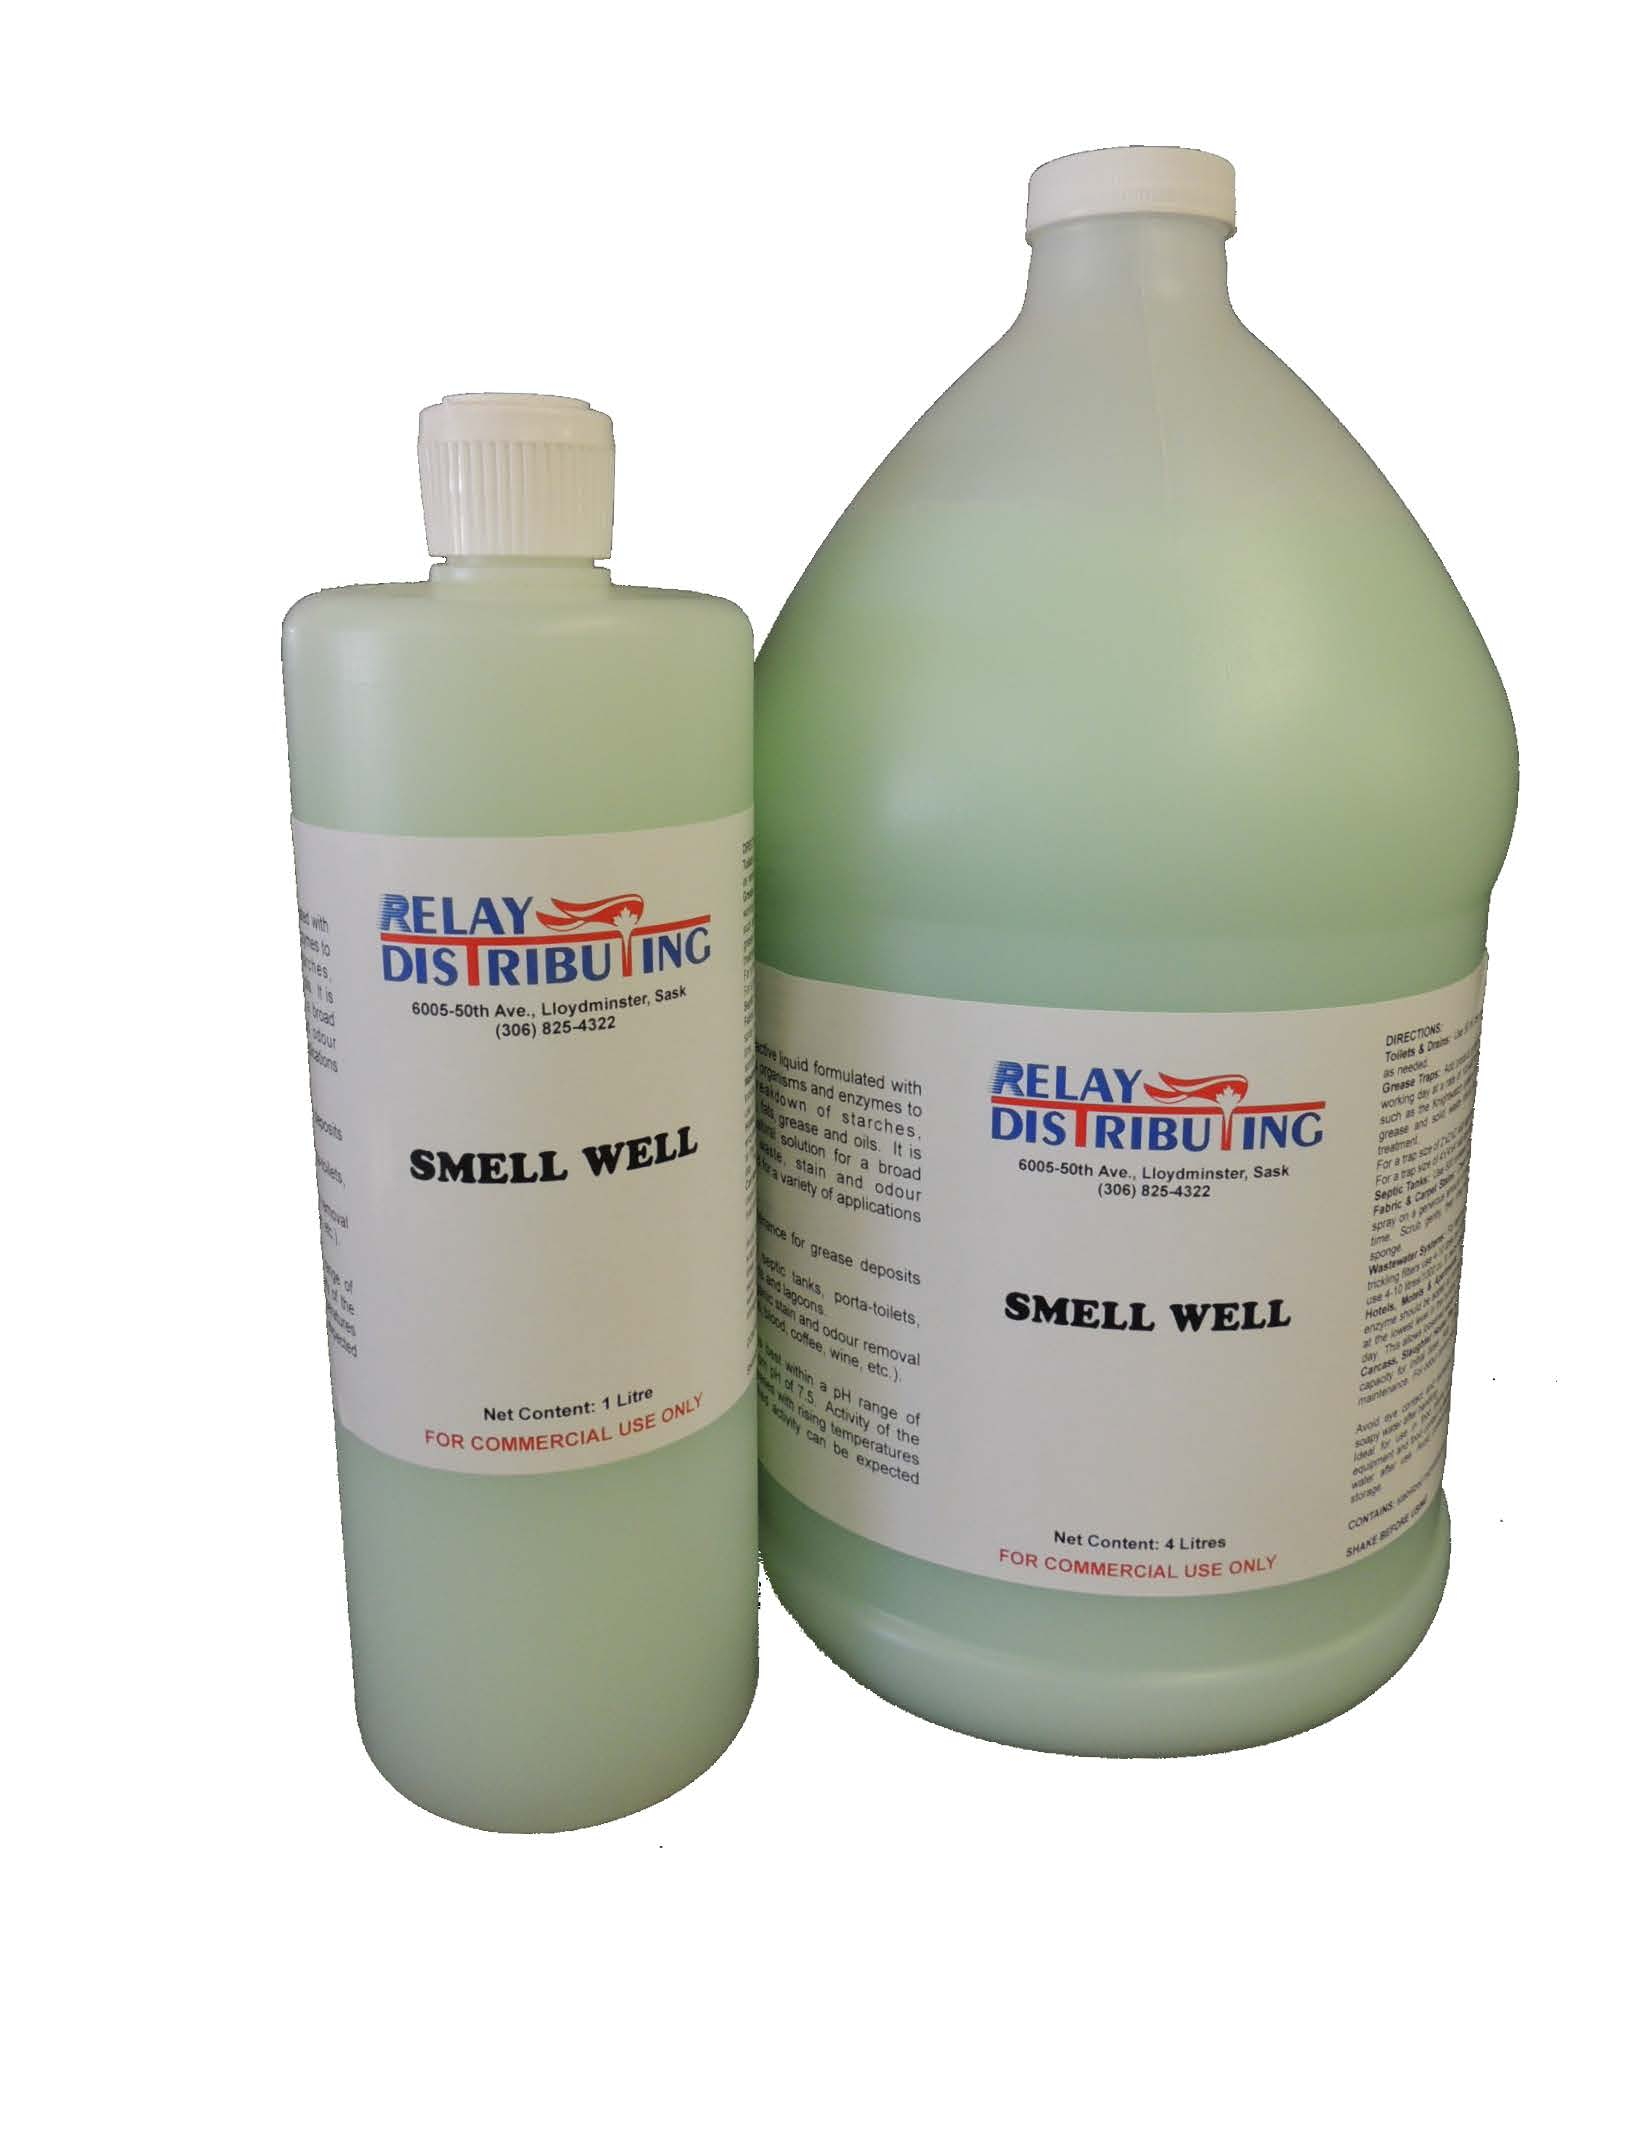 Smell well 1L and 4L